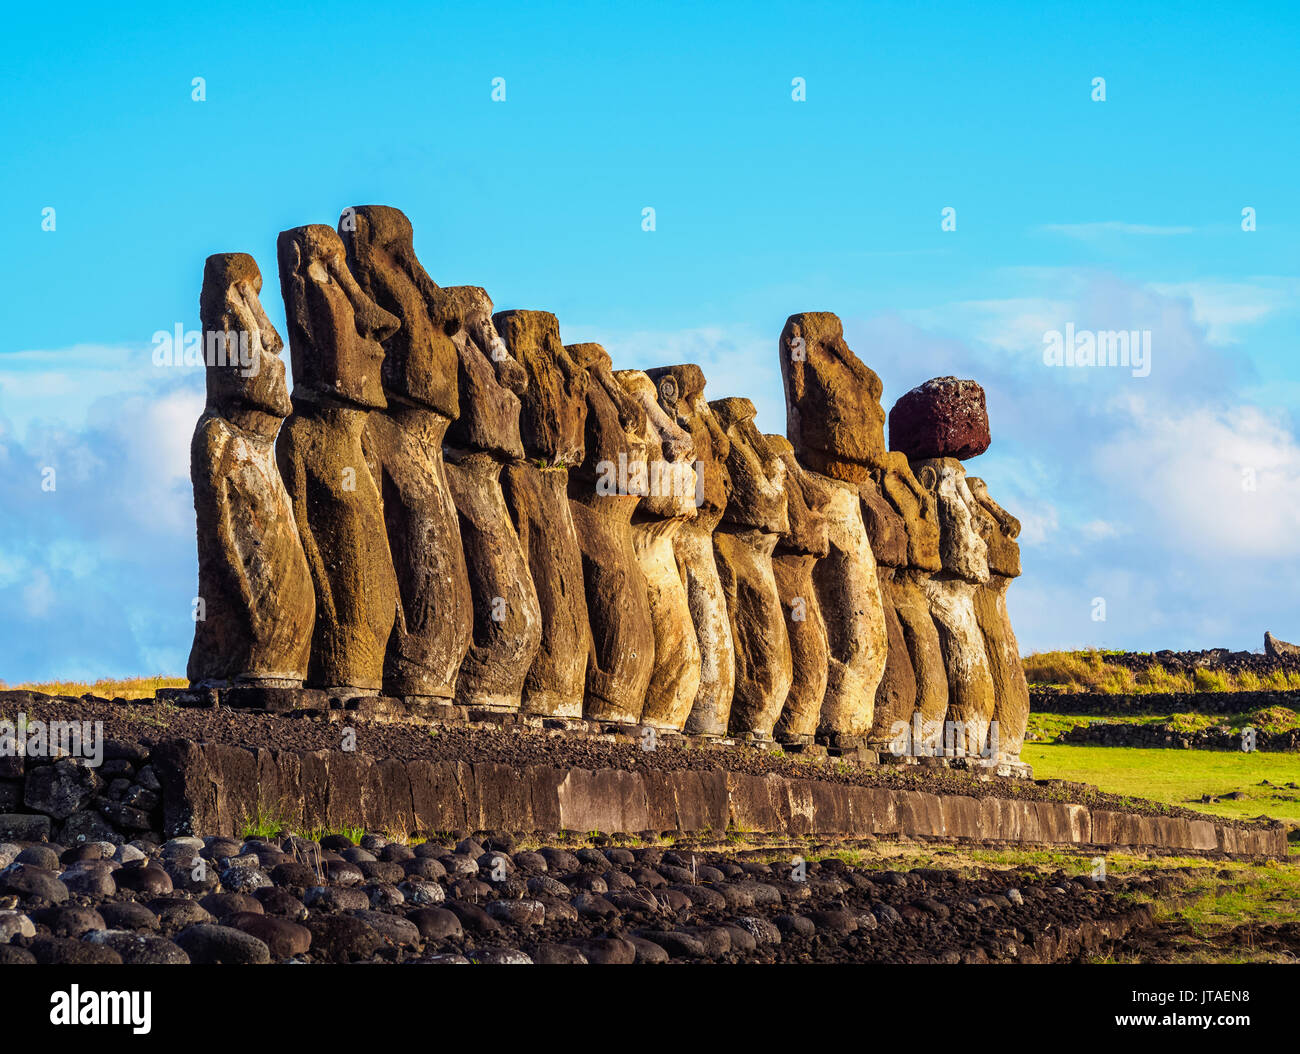 Moais in Ahu Tongariki, Rapa Nui National Park, UNESCO World Heritage Site, Easter Island, Chile - Stock Image